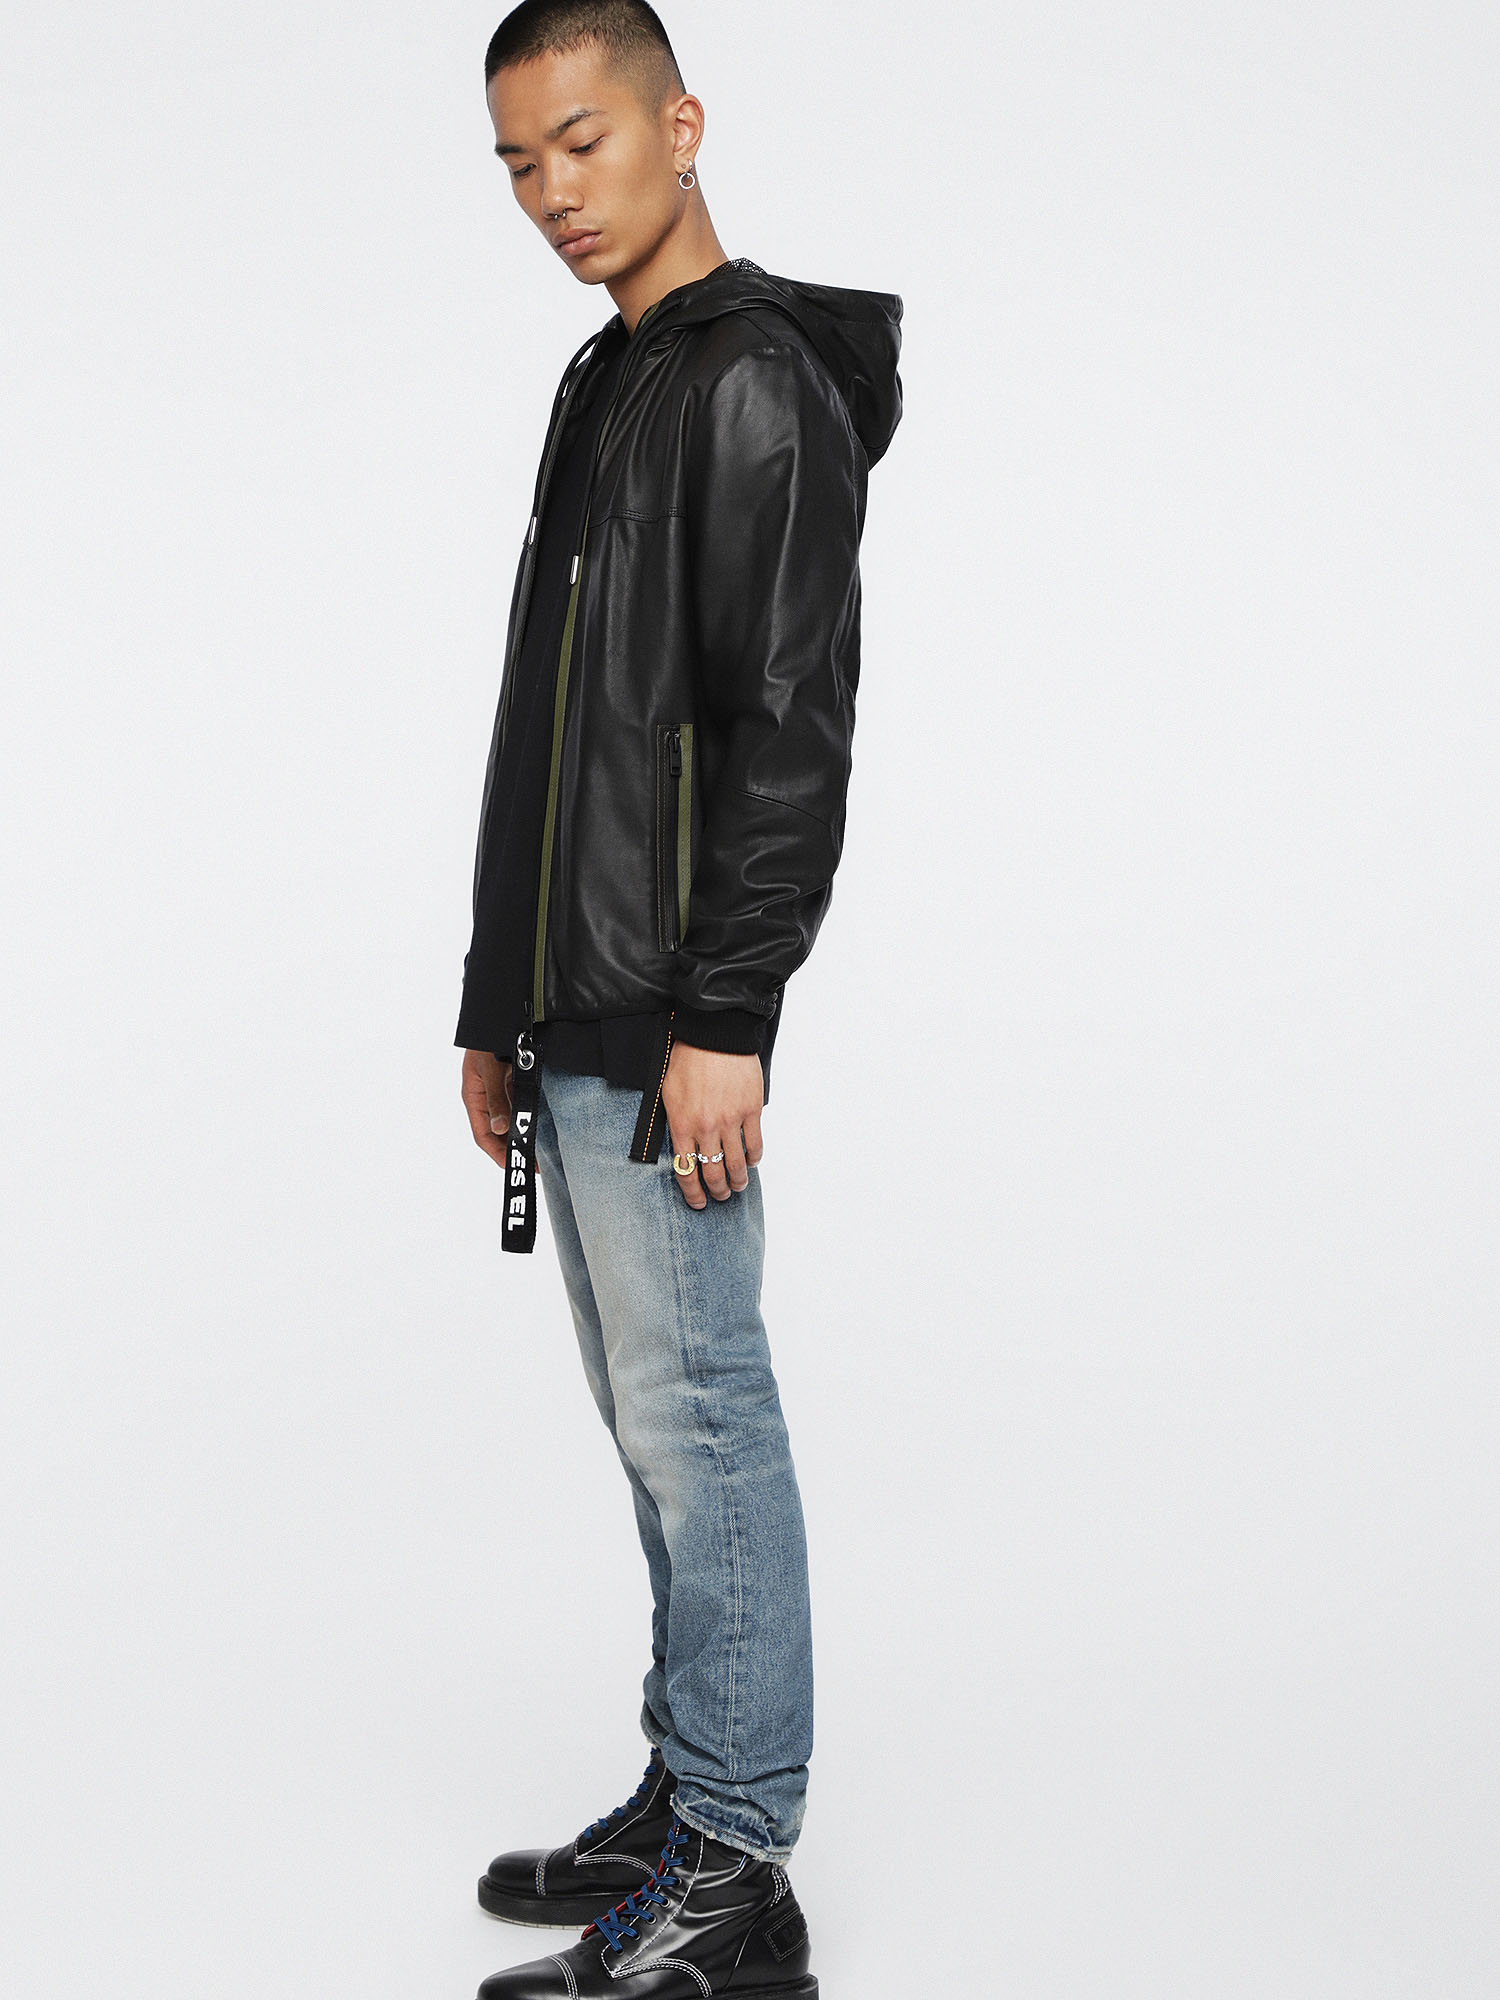 Diesel - L-TECH,  - Leather jackets - Image 6